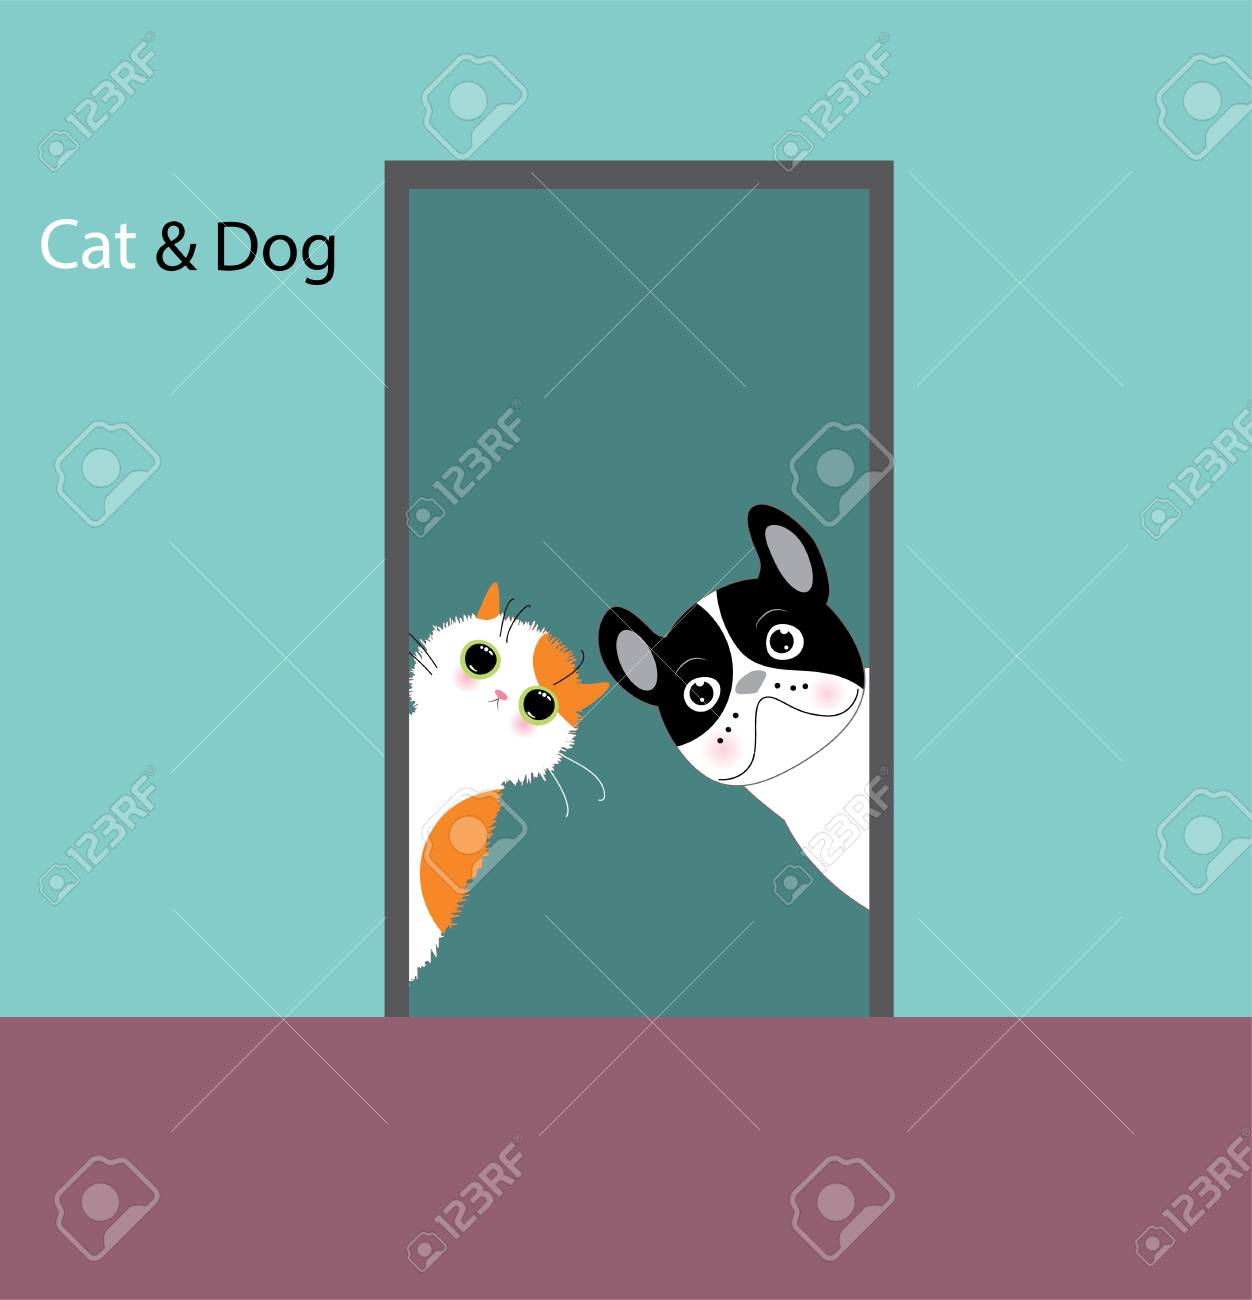 Funny dog and cat - 98613385